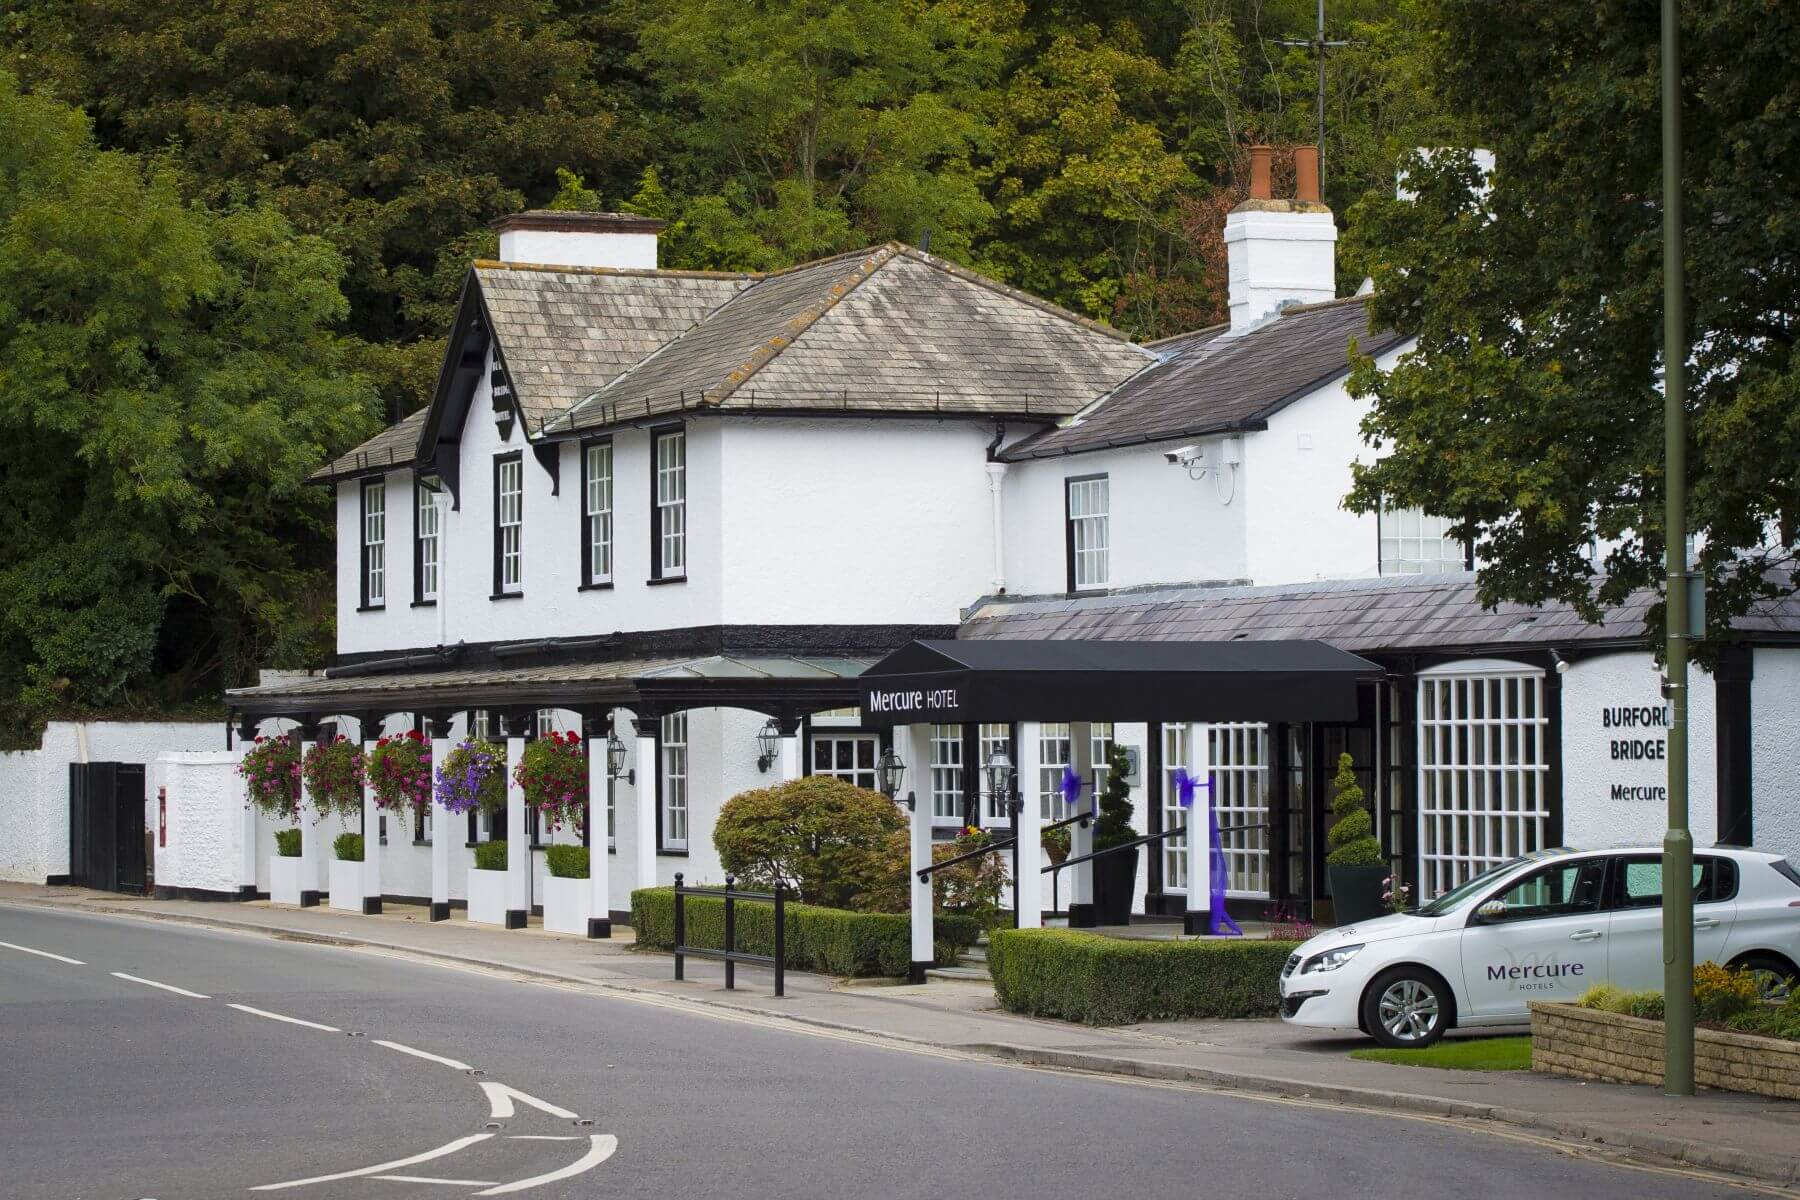 A brand new look for the mercure box hill burford bridge hotel luxuria lifestyle united kingdom - Mercure hotel head office ...